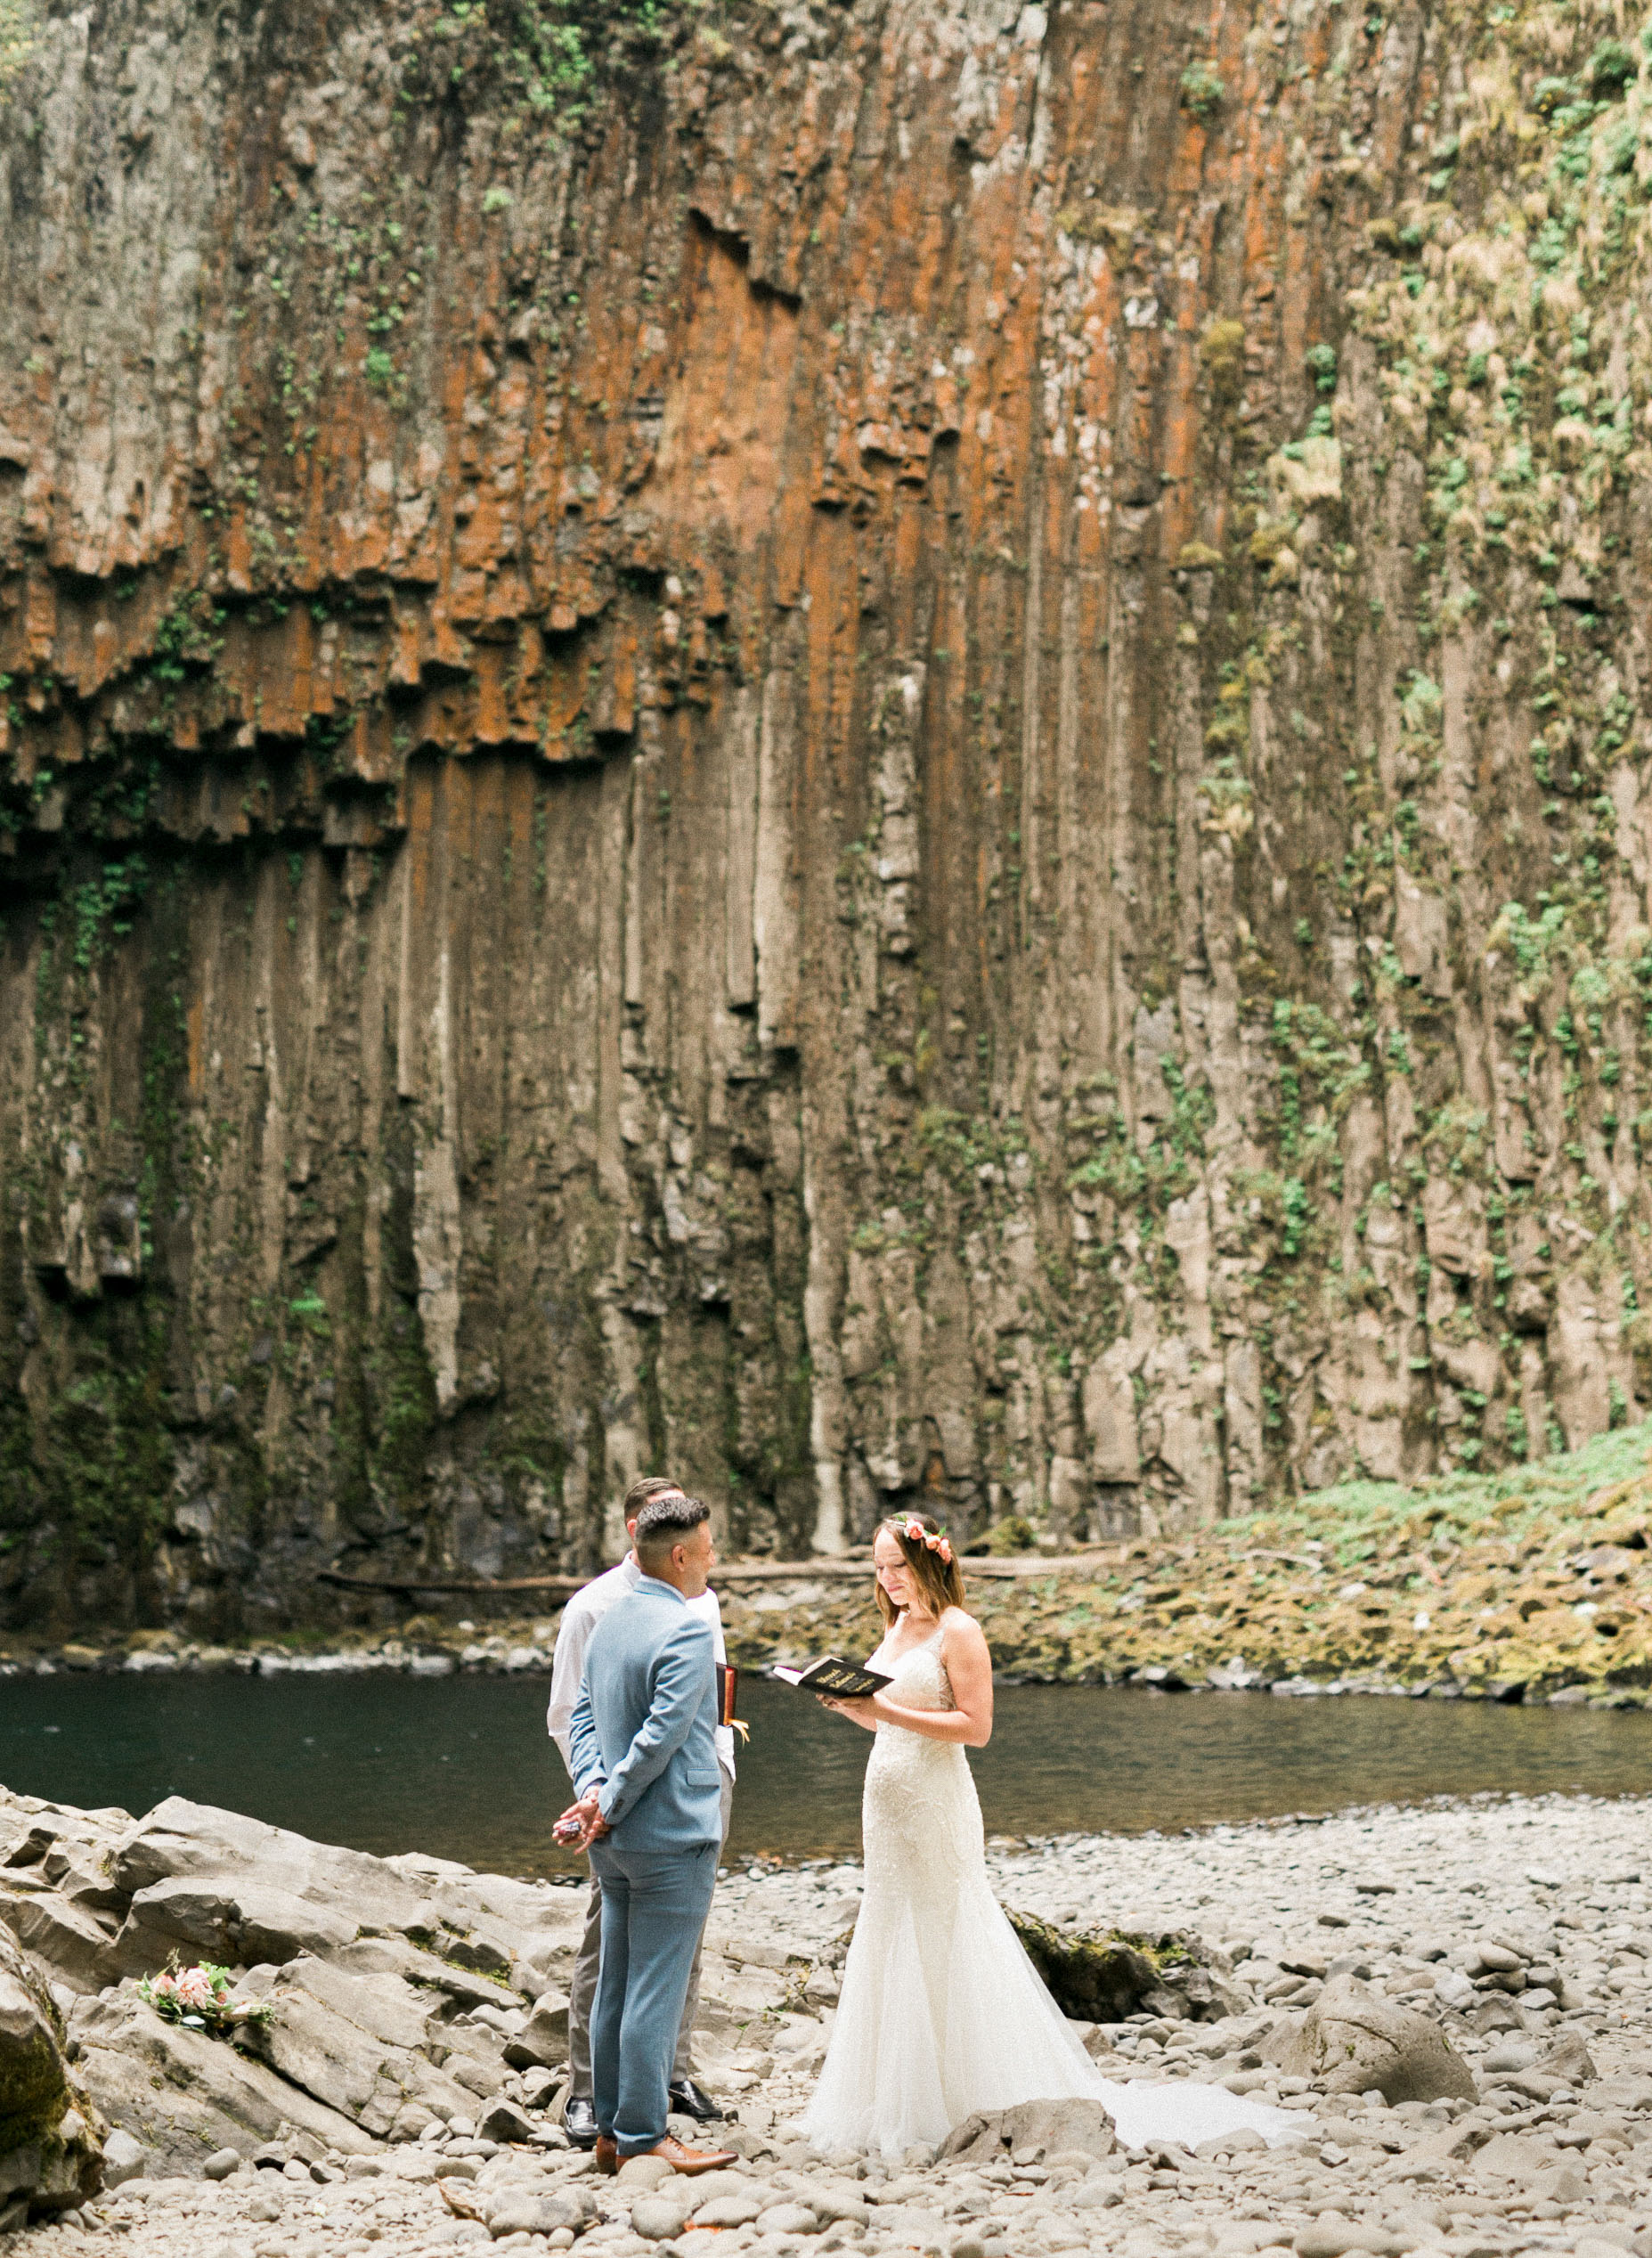 abiqua_falls_elopement_wedding_oregon_photographer_videographer_124.jpg